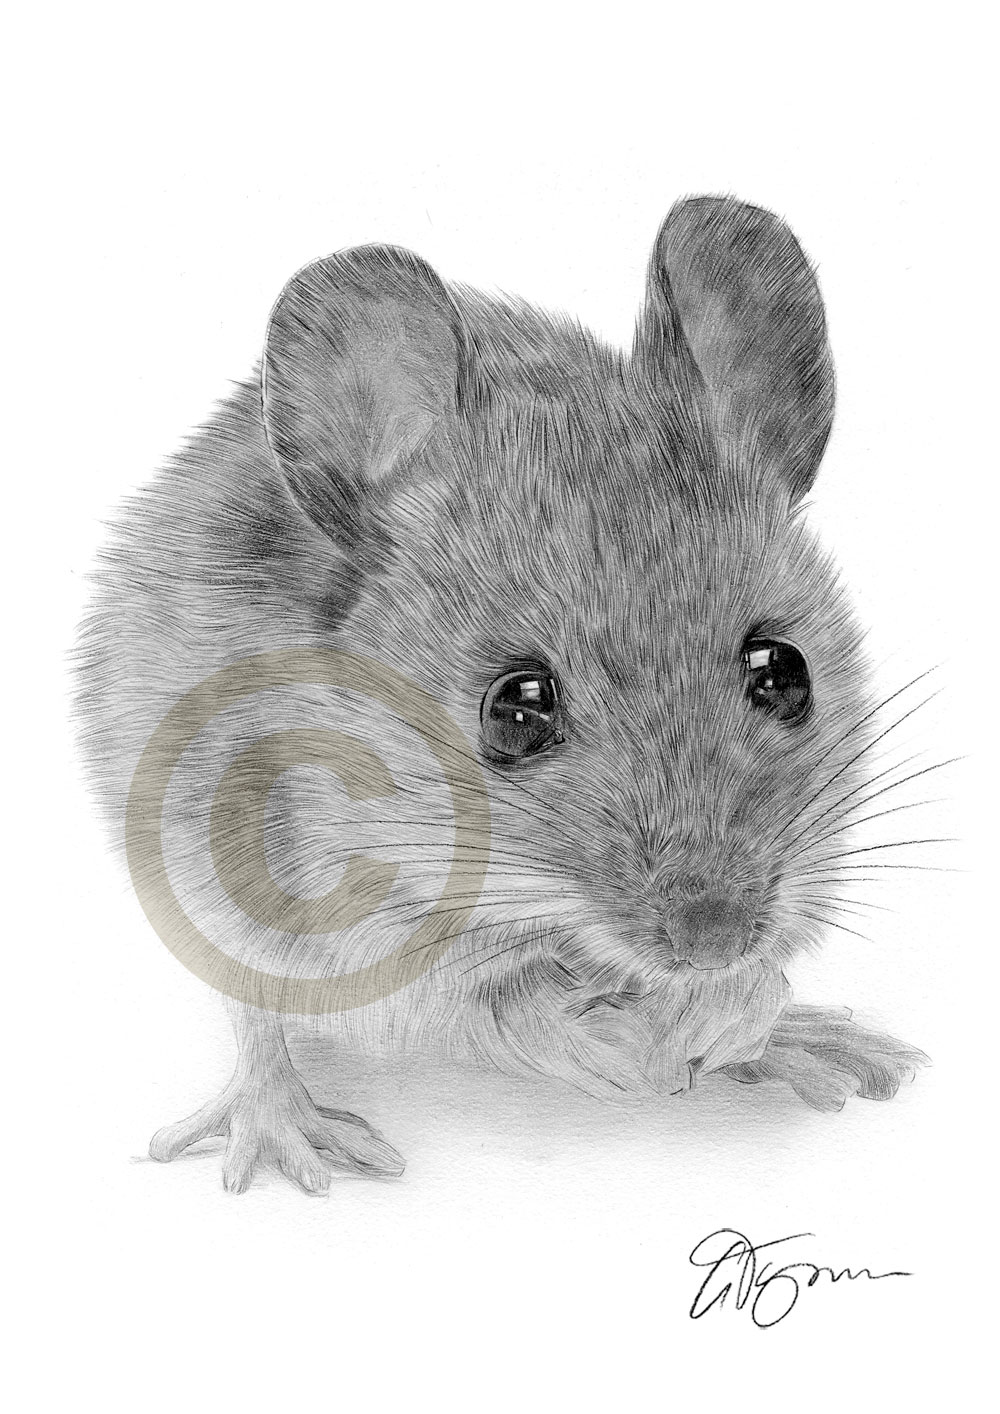 Drawn rodent pencil drawing AnimalsAnimal mouse Google mouse drawing